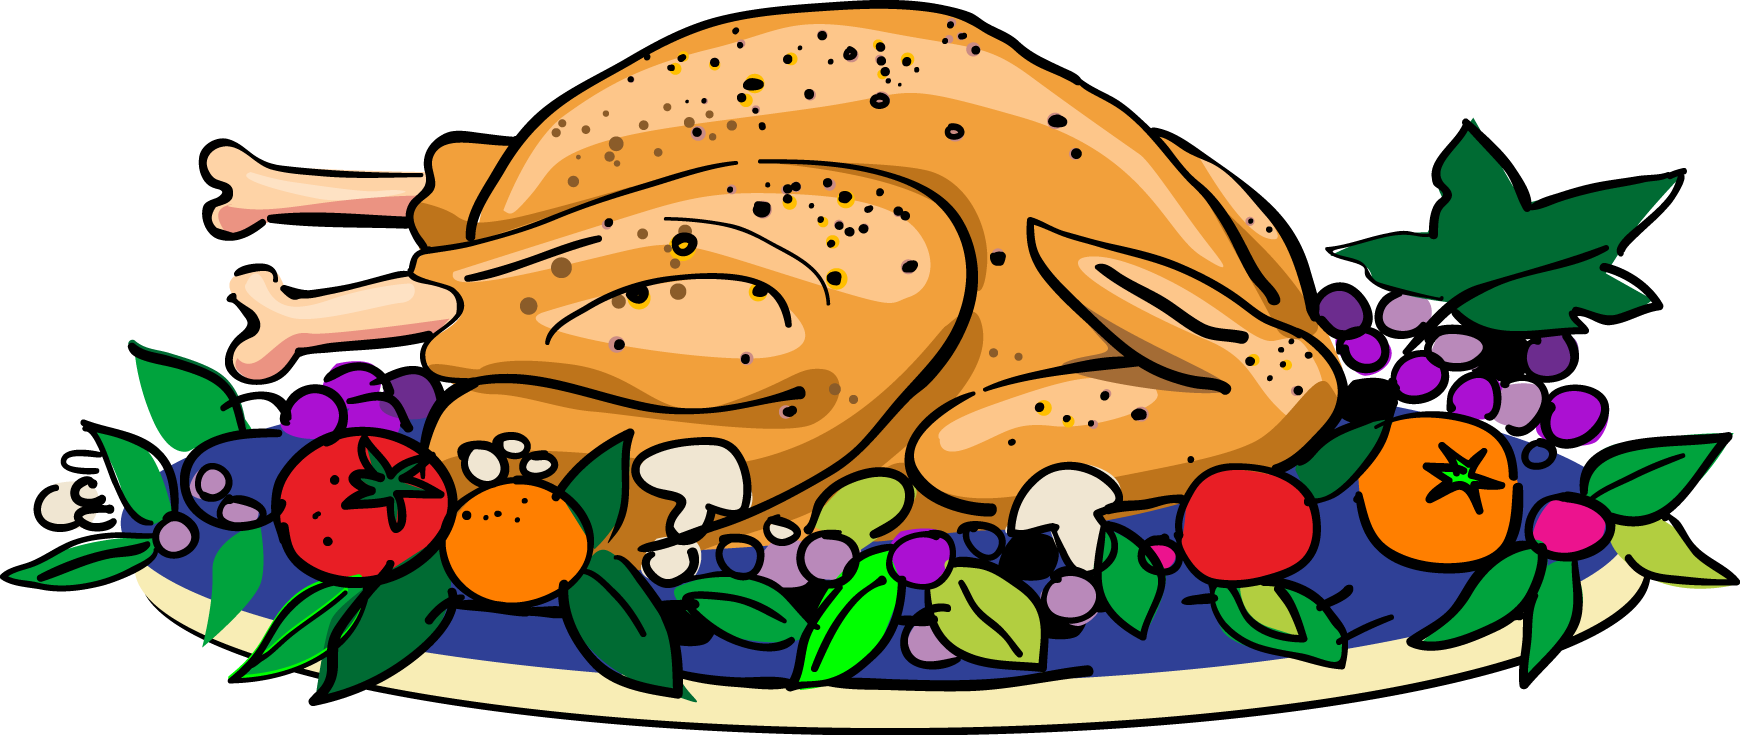 Feast group gallery turkey. Hungry clipart evening meal